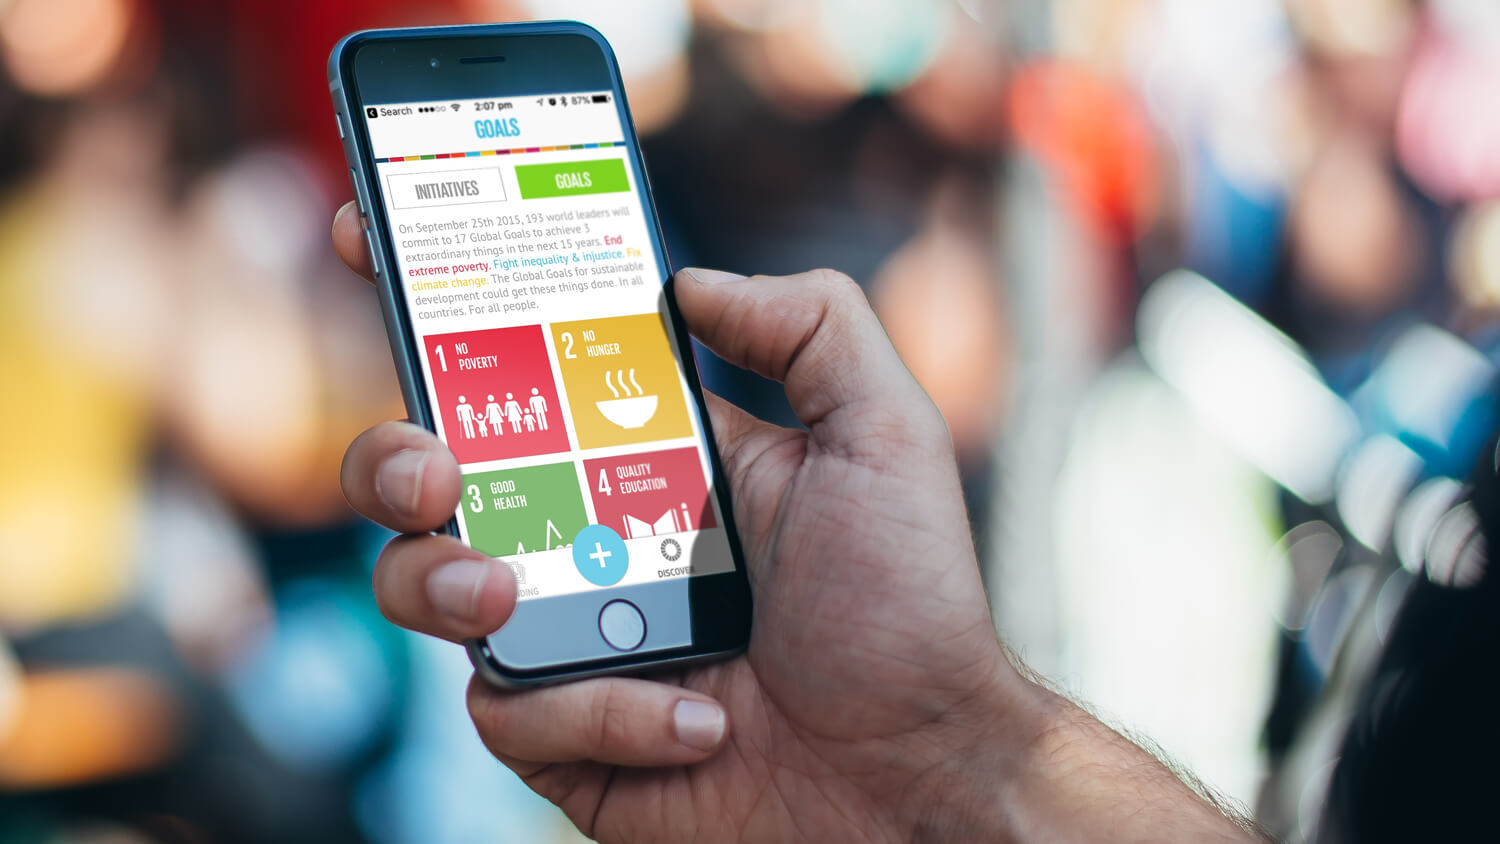 Global Goals app for the United Nations